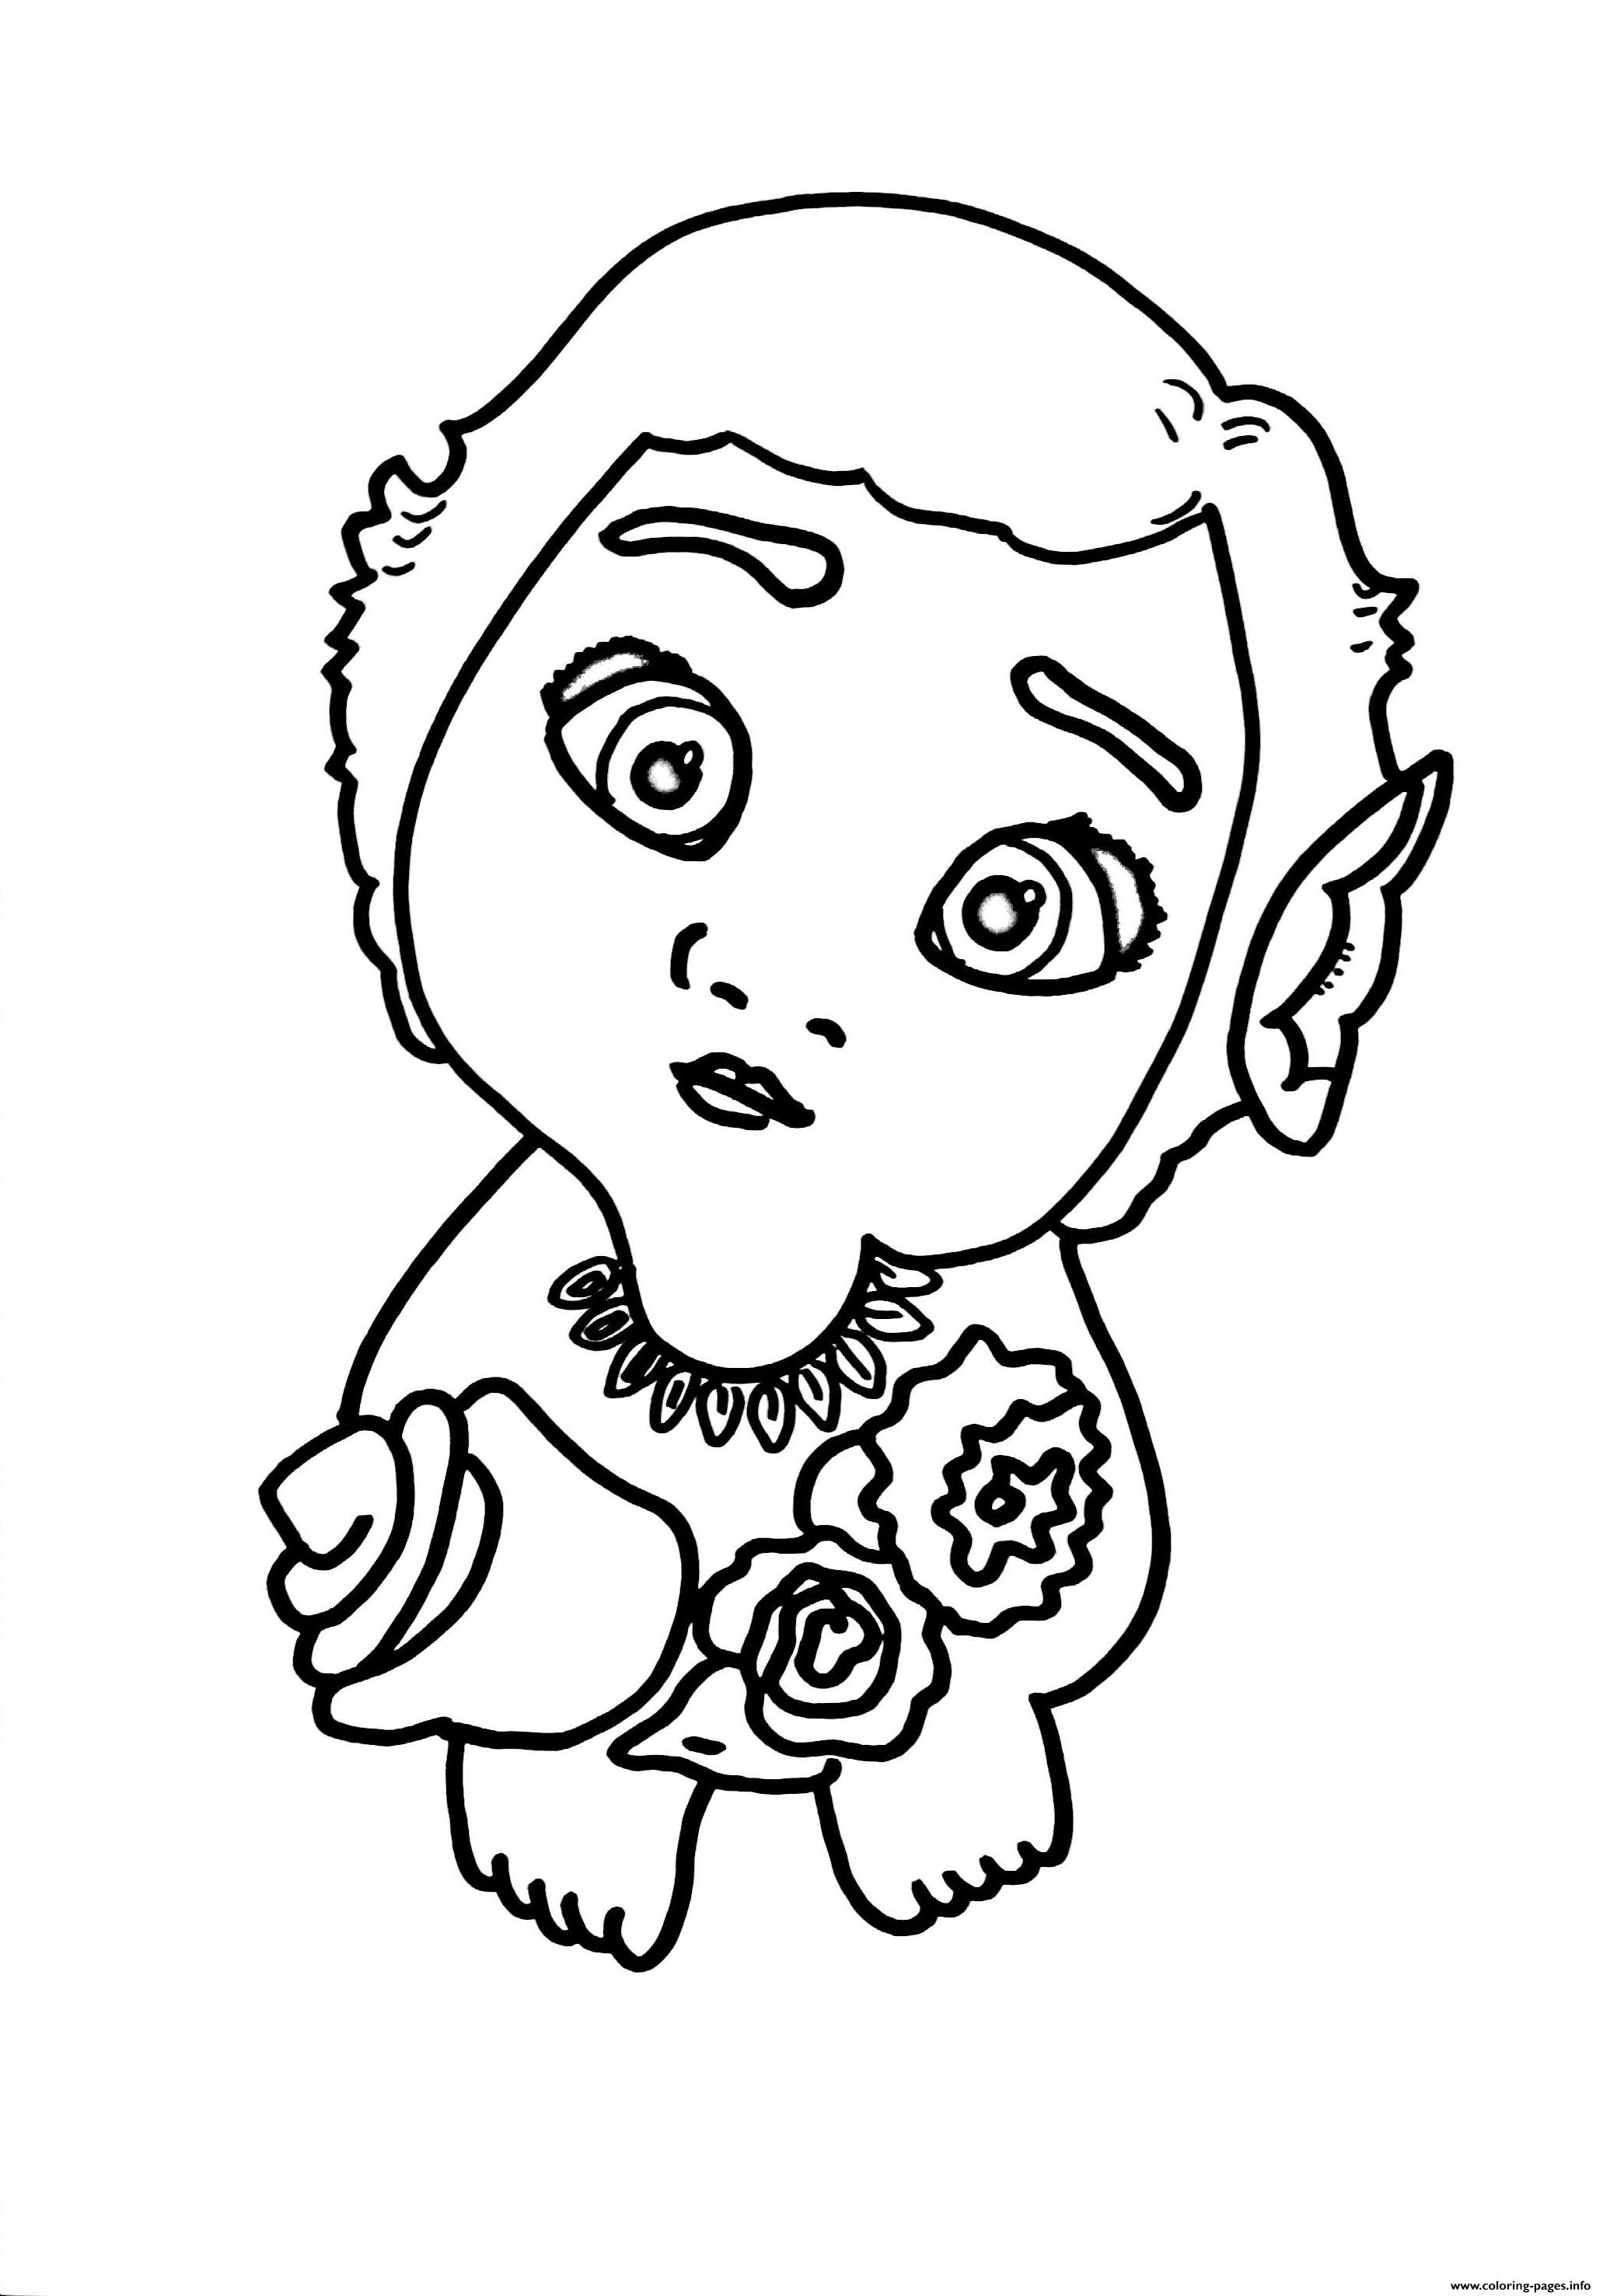 free moana coloring pages - baby moana with flowers printable coloring pages book